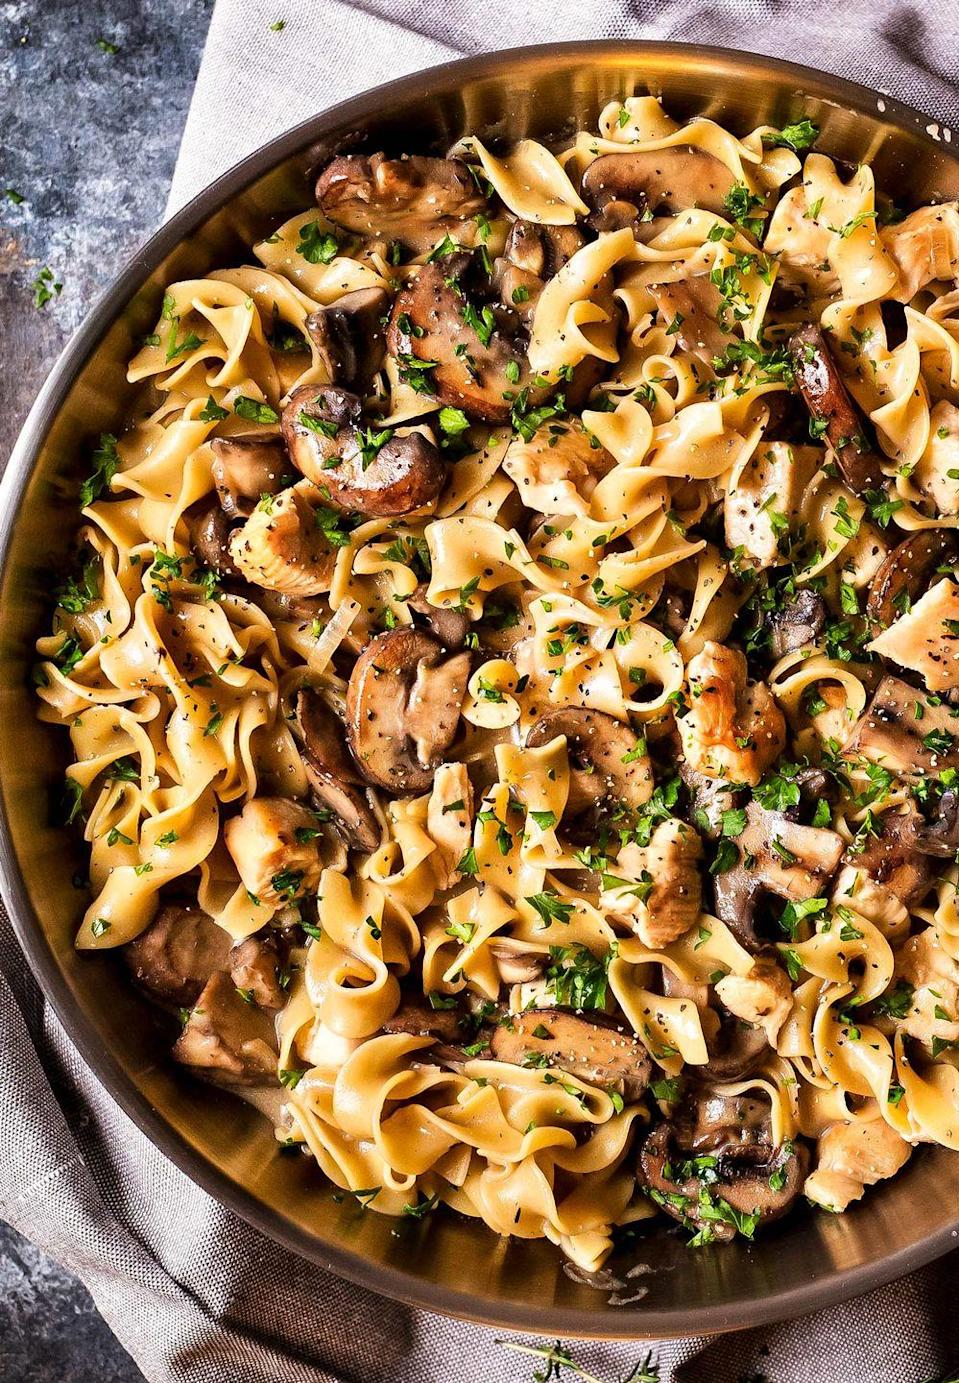 """<p>Everyone will love this classic stroganoff dish that subs the beef for chicken and uses only one dish.</p><p><strong>Get the recipe at <a href=""""https://www.thechunkychef.com/hearty-one-pot-chicken-stroganoff/"""" rel=""""nofollow noopener"""" target=""""_blank"""" data-ylk=""""slk:The Chunky Chef"""" class=""""link rapid-noclick-resp"""">The Chunky Chef</a>.</strong> </p><p><a class=""""link rapid-noclick-resp"""" href=""""https://www.amazon.com/Enameled-Double-Dutch-Oven-5-Quart/dp/B07F2LMPM7/?tag=syn-yahoo-20&ascsubtag=%5Bartid%7C10050.g.4772%5Bsrc%7Cyahoo-us"""" rel=""""nofollow noopener"""" target=""""_blank"""" data-ylk=""""slk:SHOP DUTCH OVENS"""">SHOP DUTCH OVENS</a></p>"""